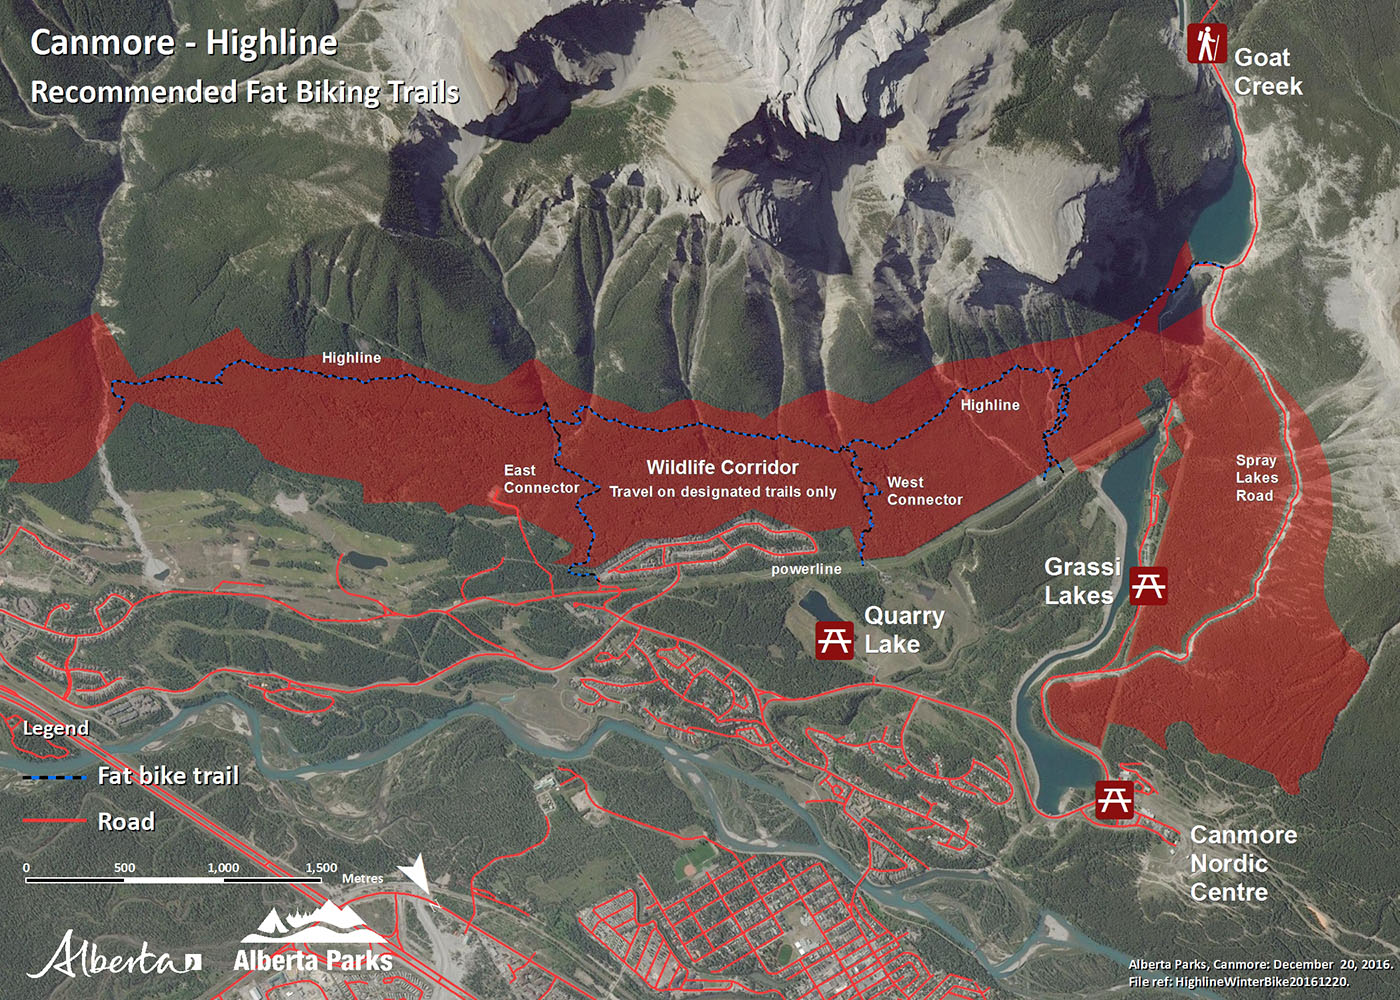 Kananaskis Canmore Area - Highline Fat Bike Map